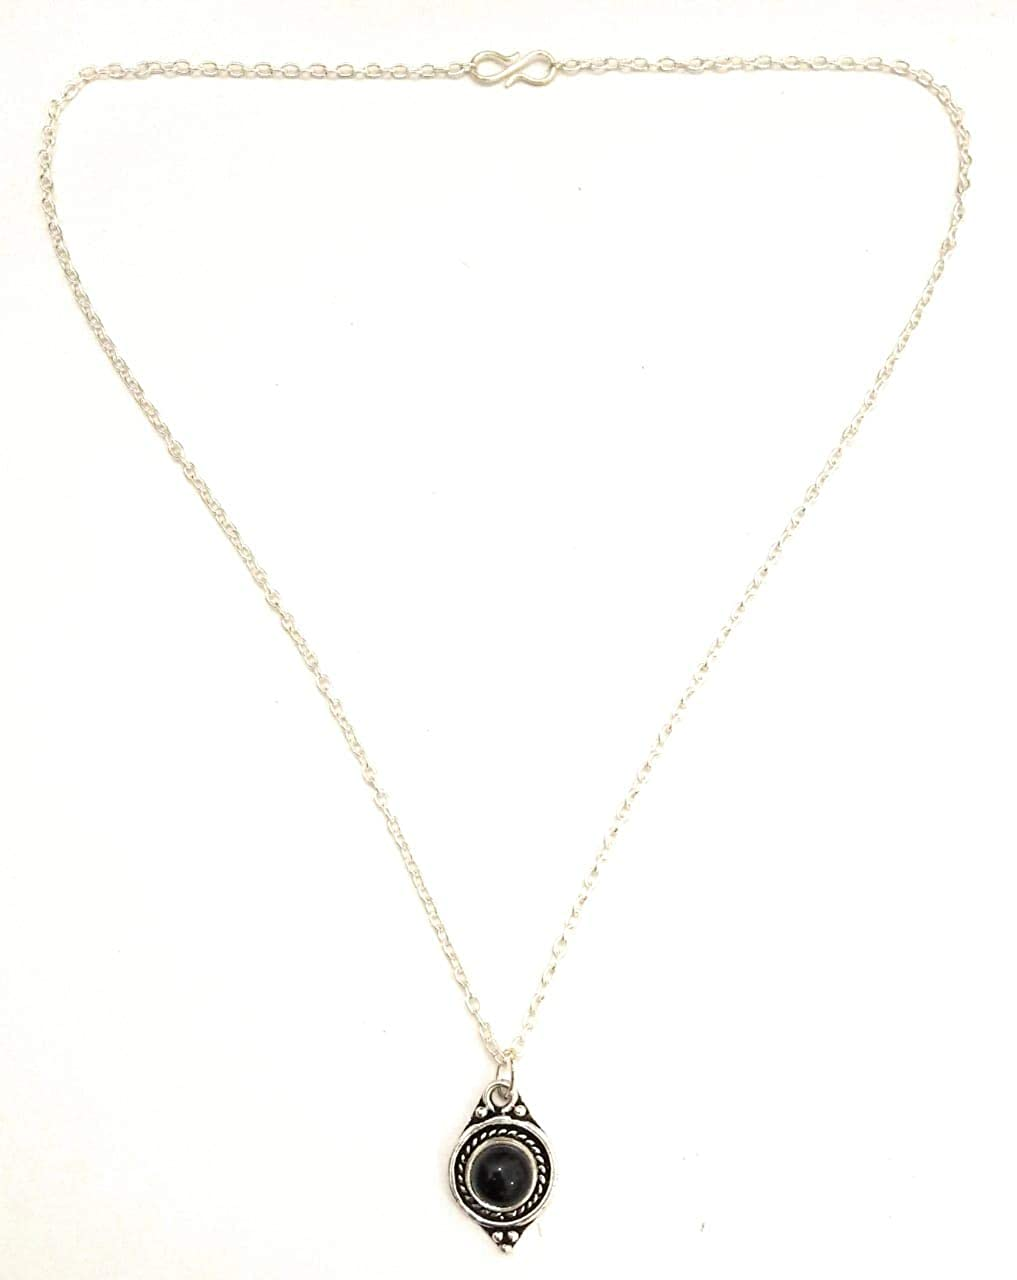 Athizay Imitation Silver Long Chain with Black Stone Pendant Formal Look for Women Stylish Chunky Chain Necklace Opera